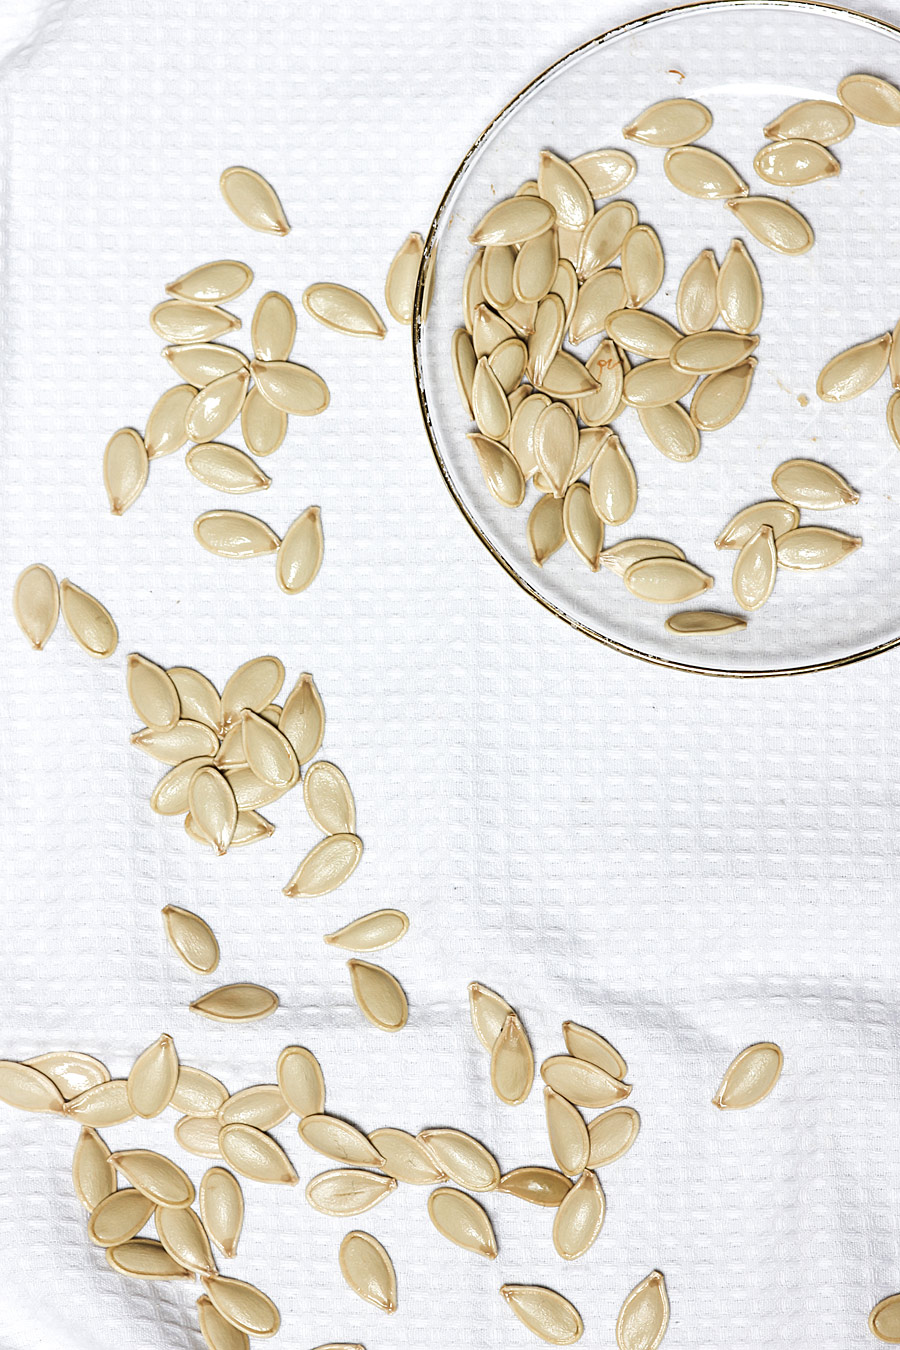 Pumpkin seeds | Lau Sunday cooks